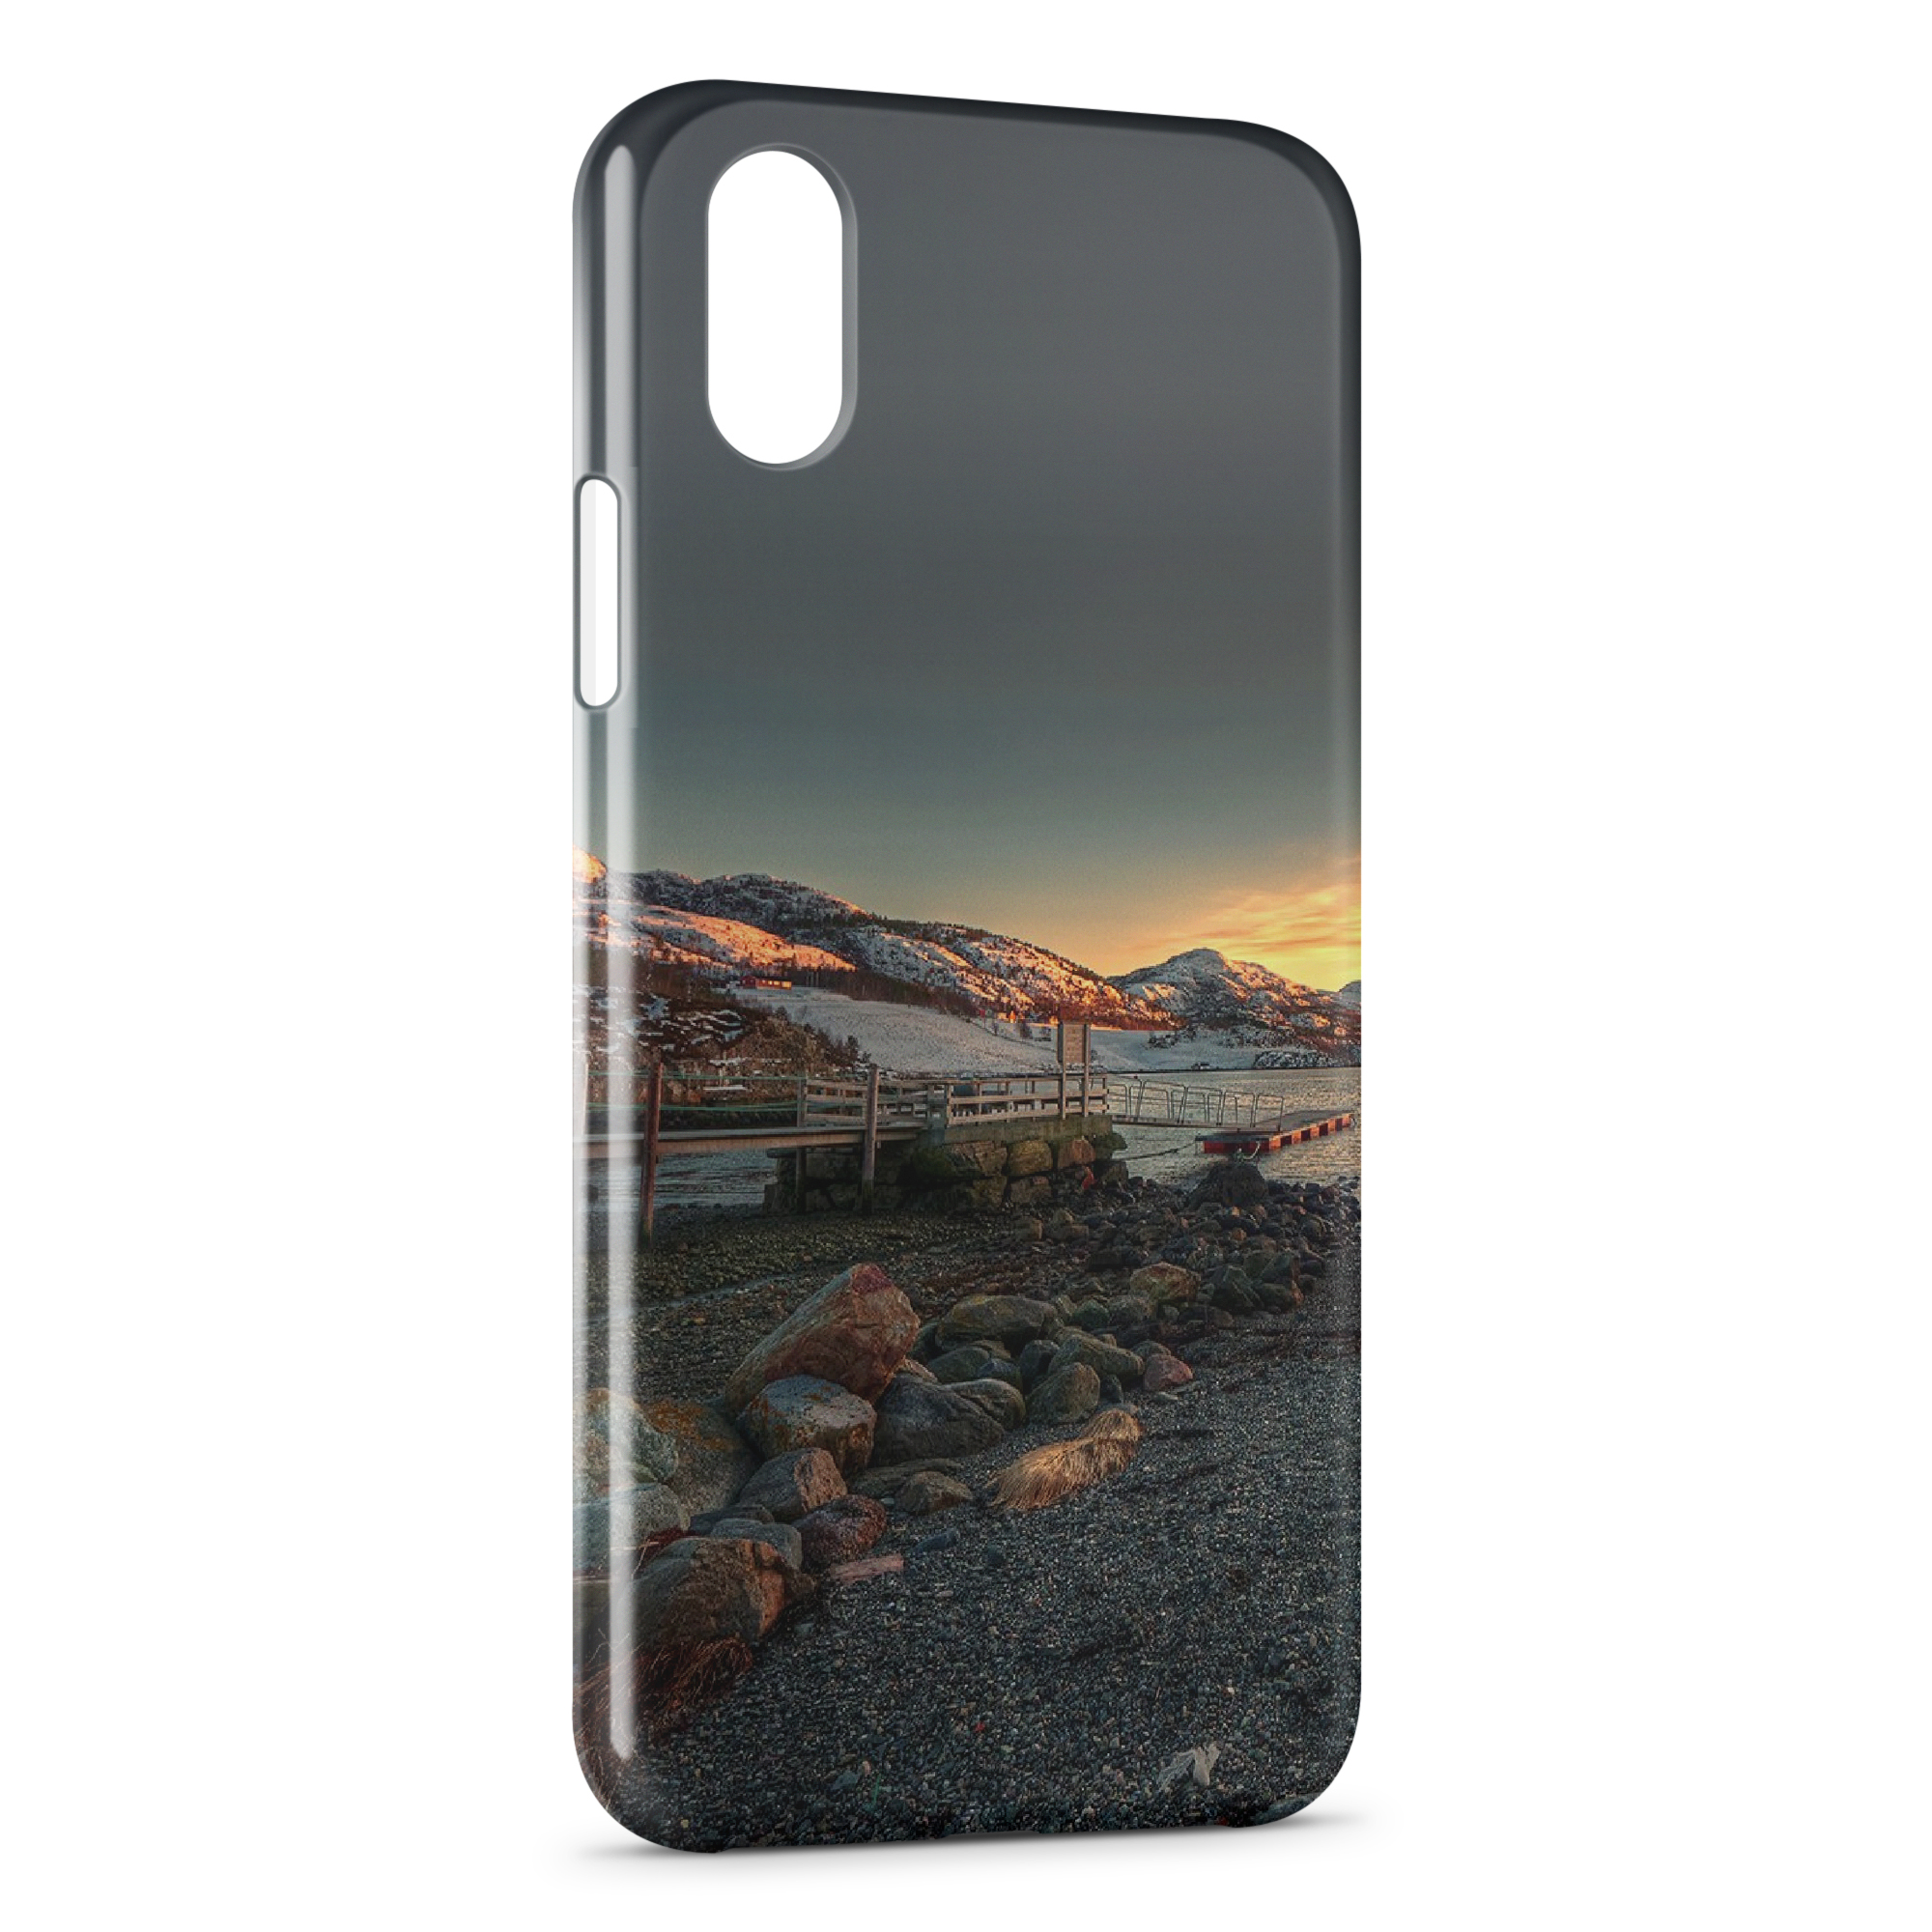 Coque iPhone XR Paysage 7